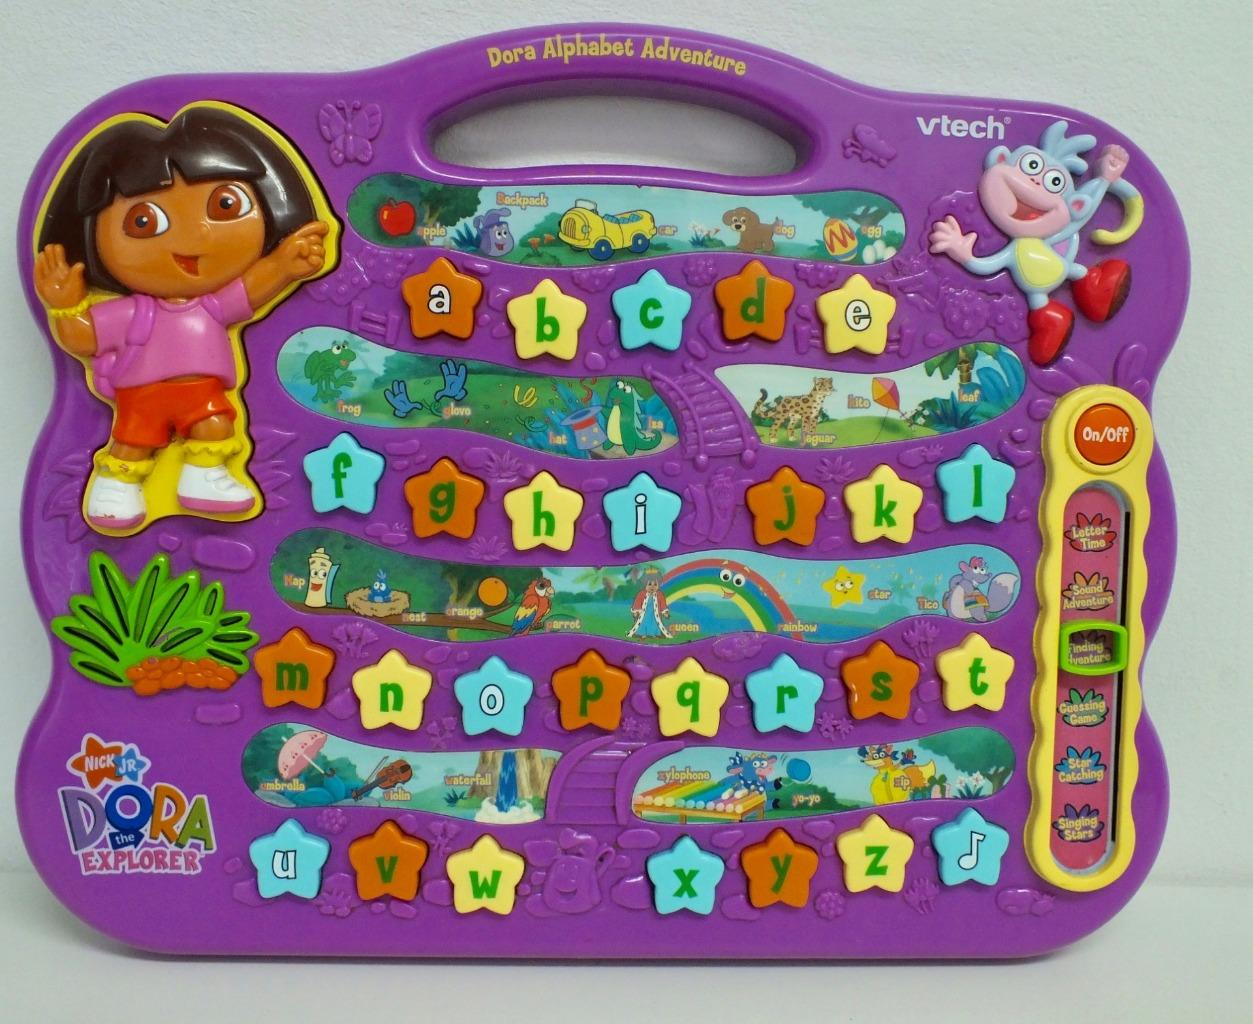 Dora The Explorer Alphabet Adventure Vtech Laptop